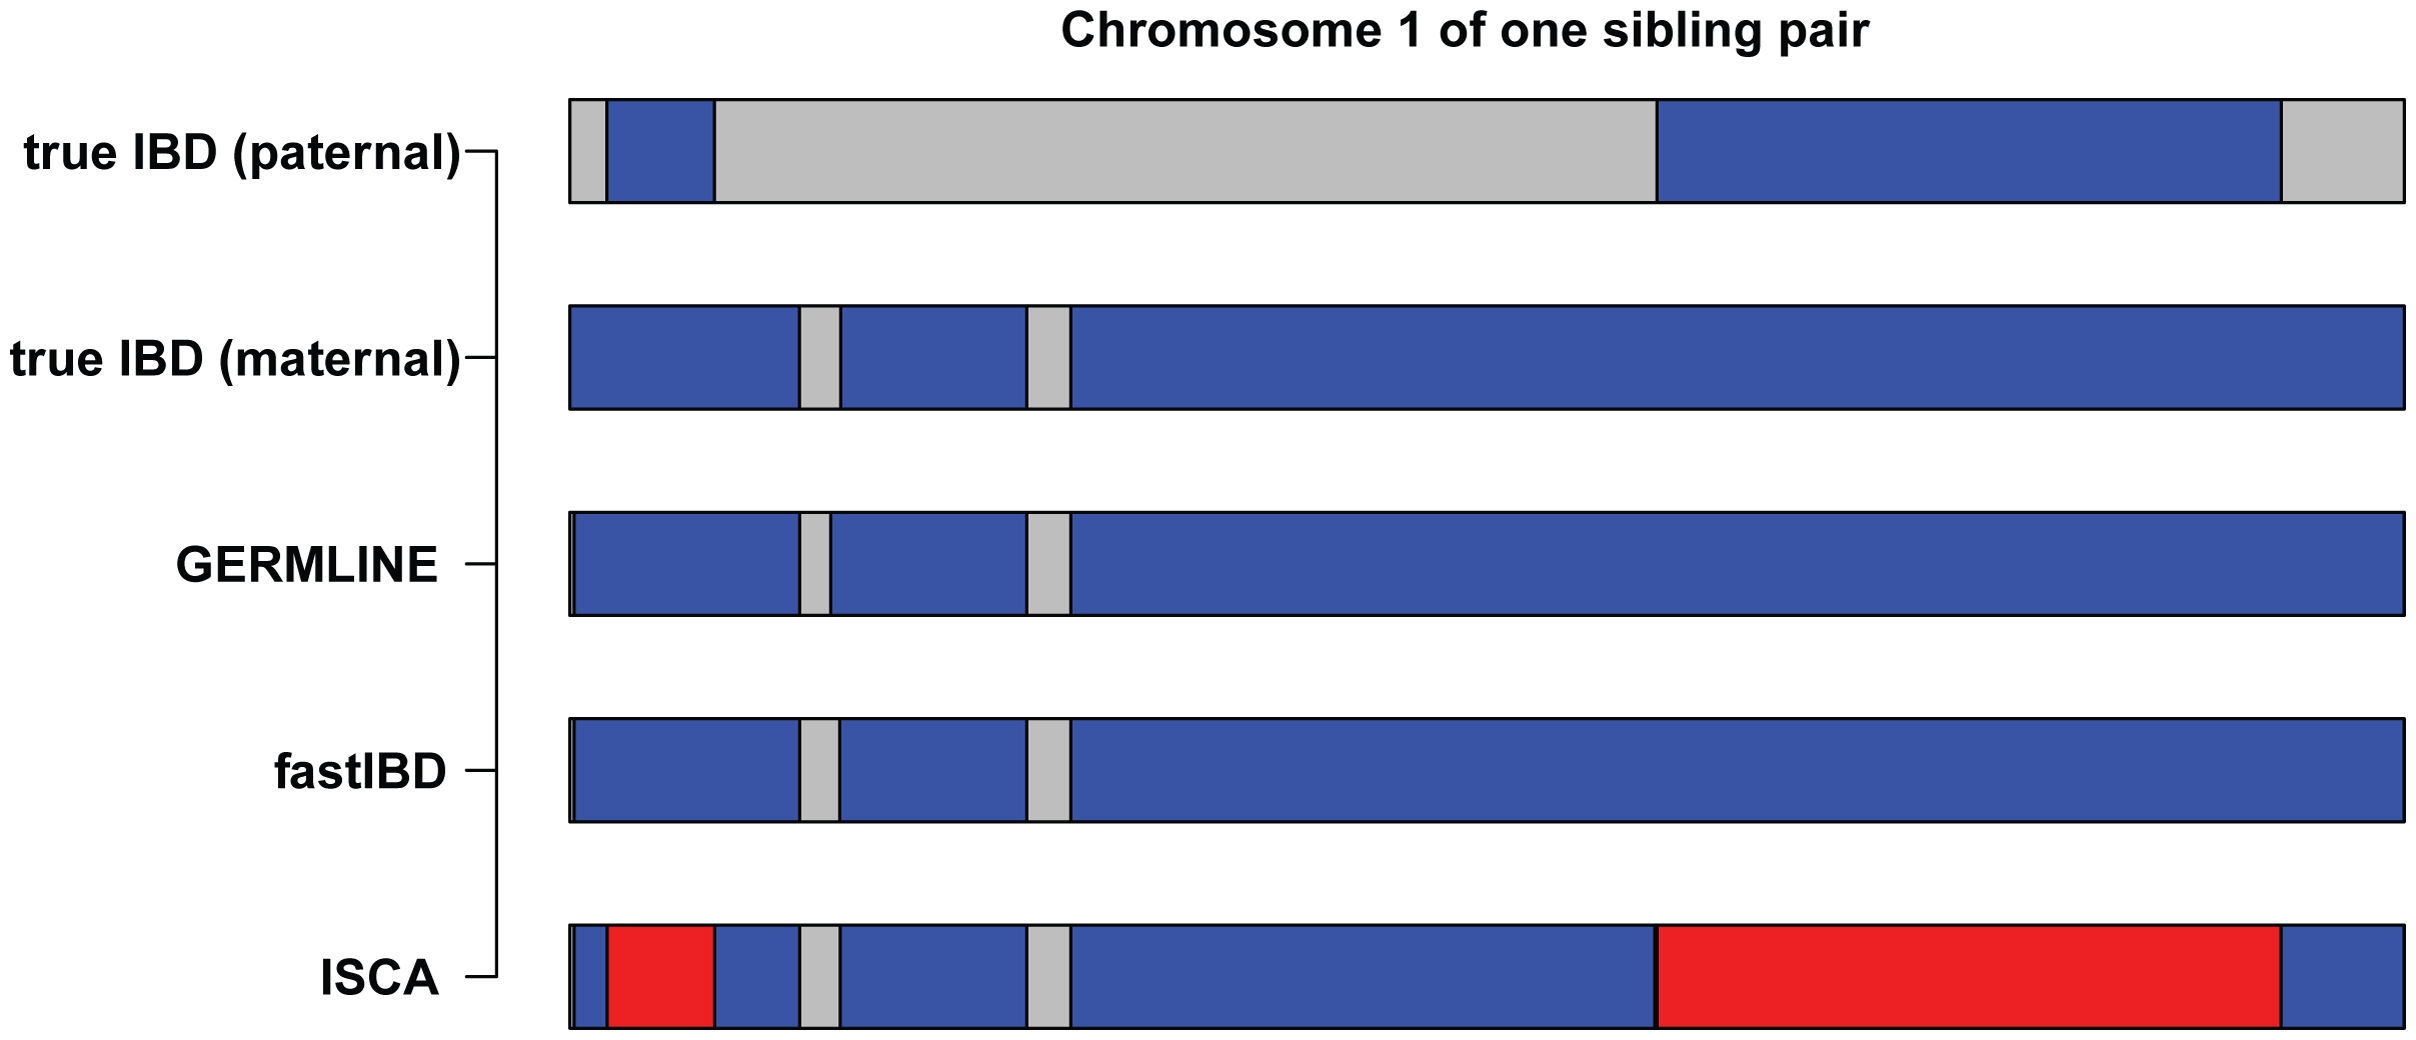 Comparison of IBD inferred by GERMLINE, fastIBD, and ISCA.